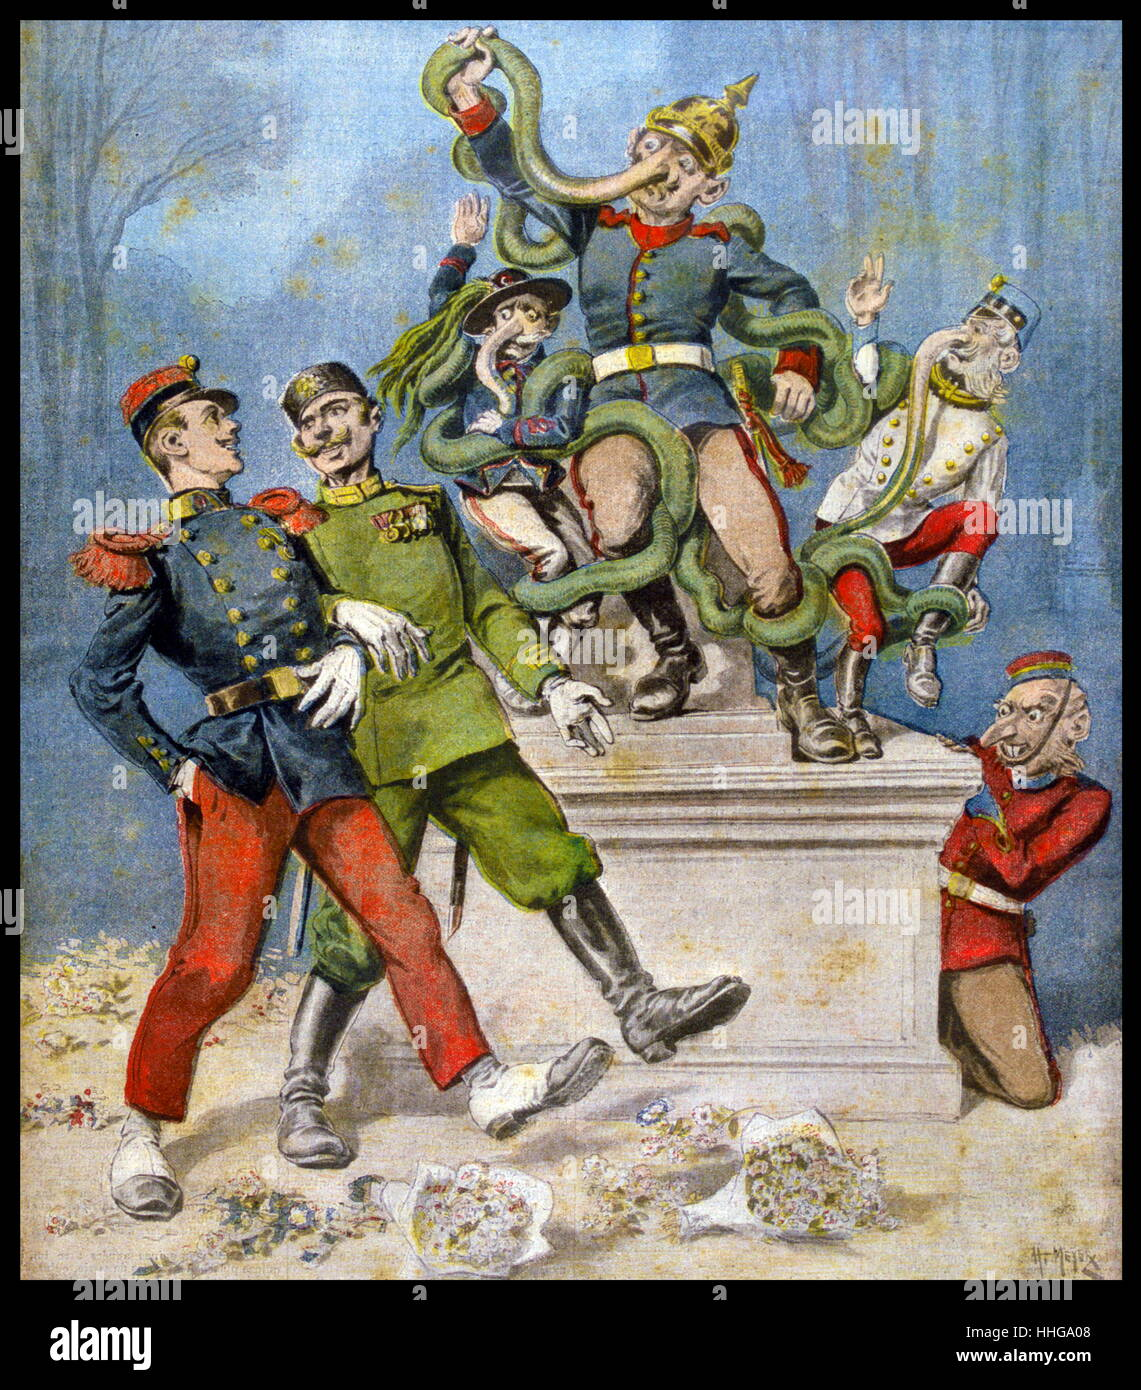 Cartoon showing the Triple Alliance between Germany, Italy and Austria. - Stock Image